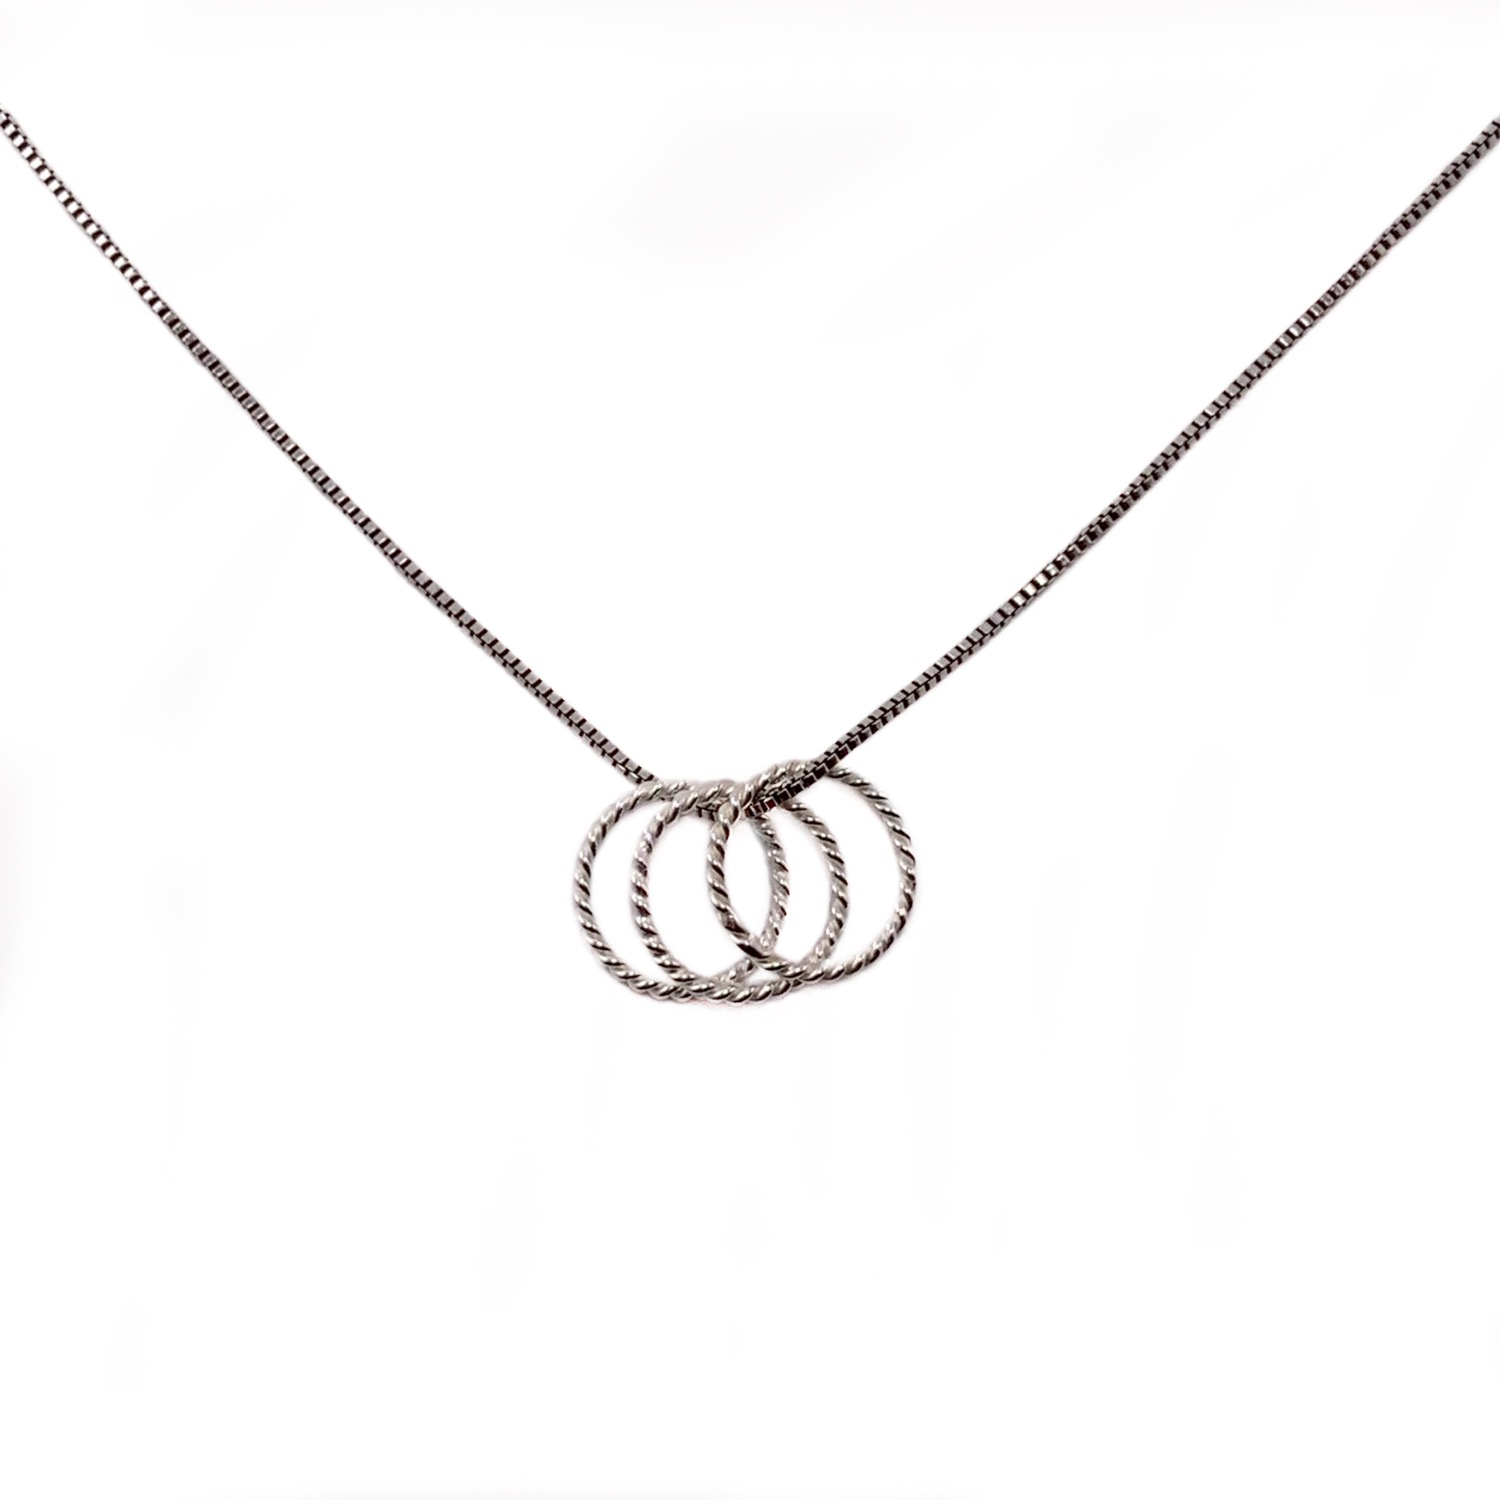 Minimalist 3 Rings Necklace